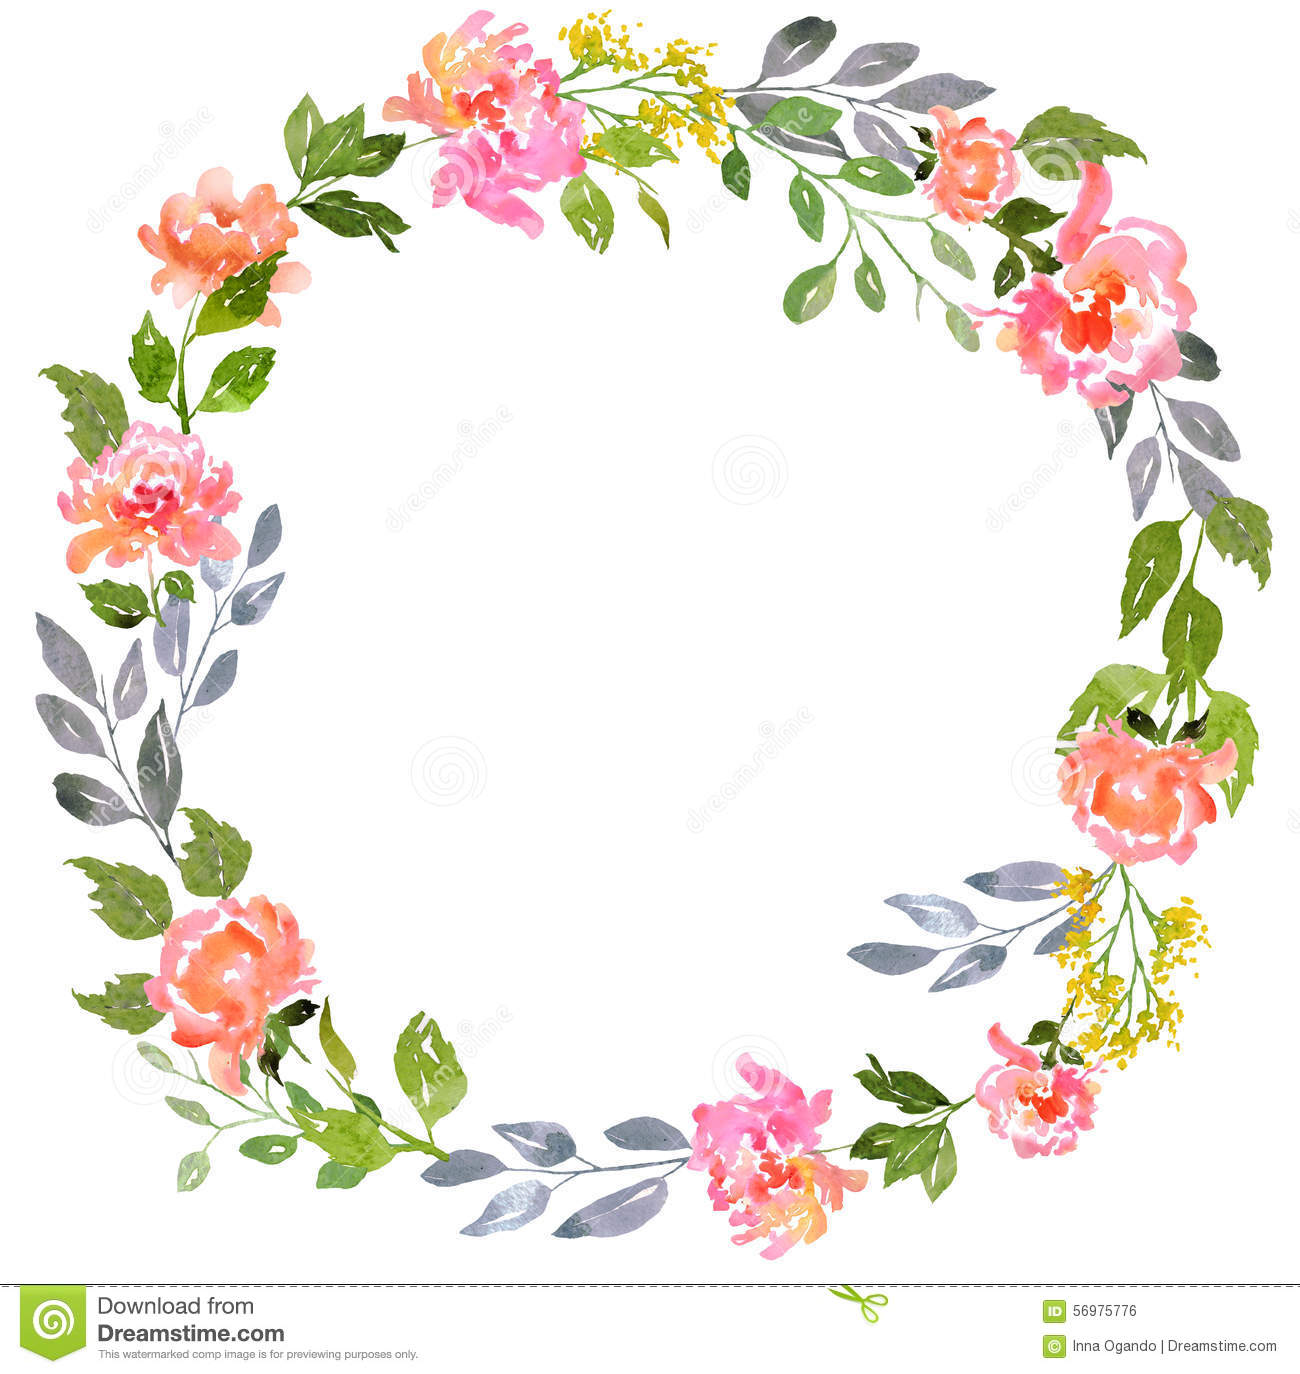 watercolor floral card template stock illustration - illustration of